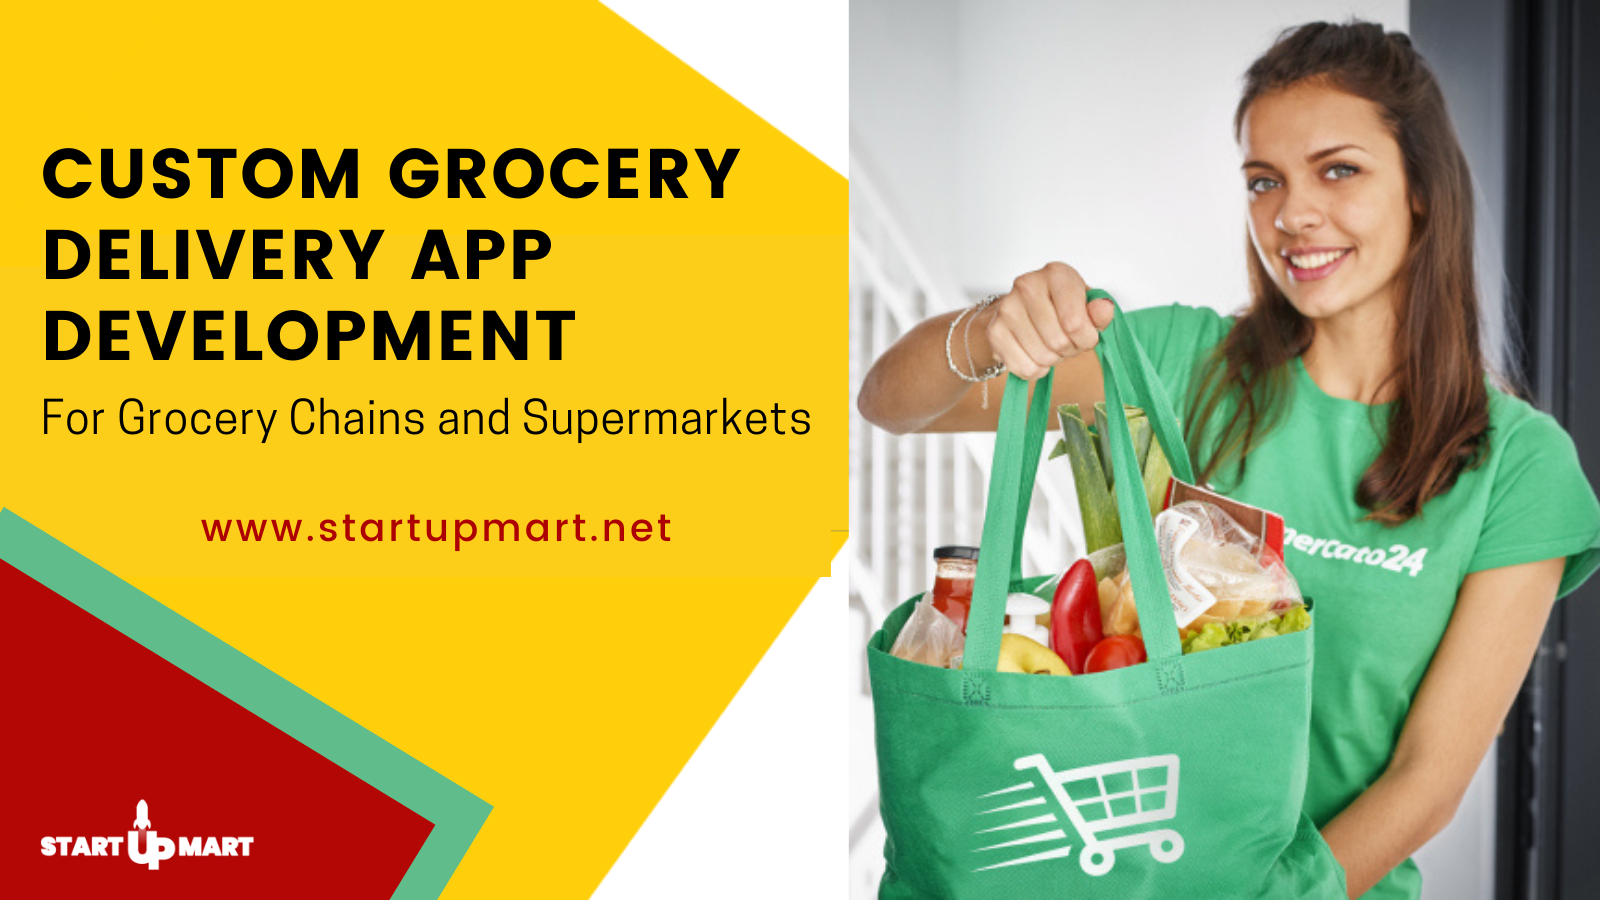 Custom Grocery Delivery App Development For Grocery Chains and Supermarkets